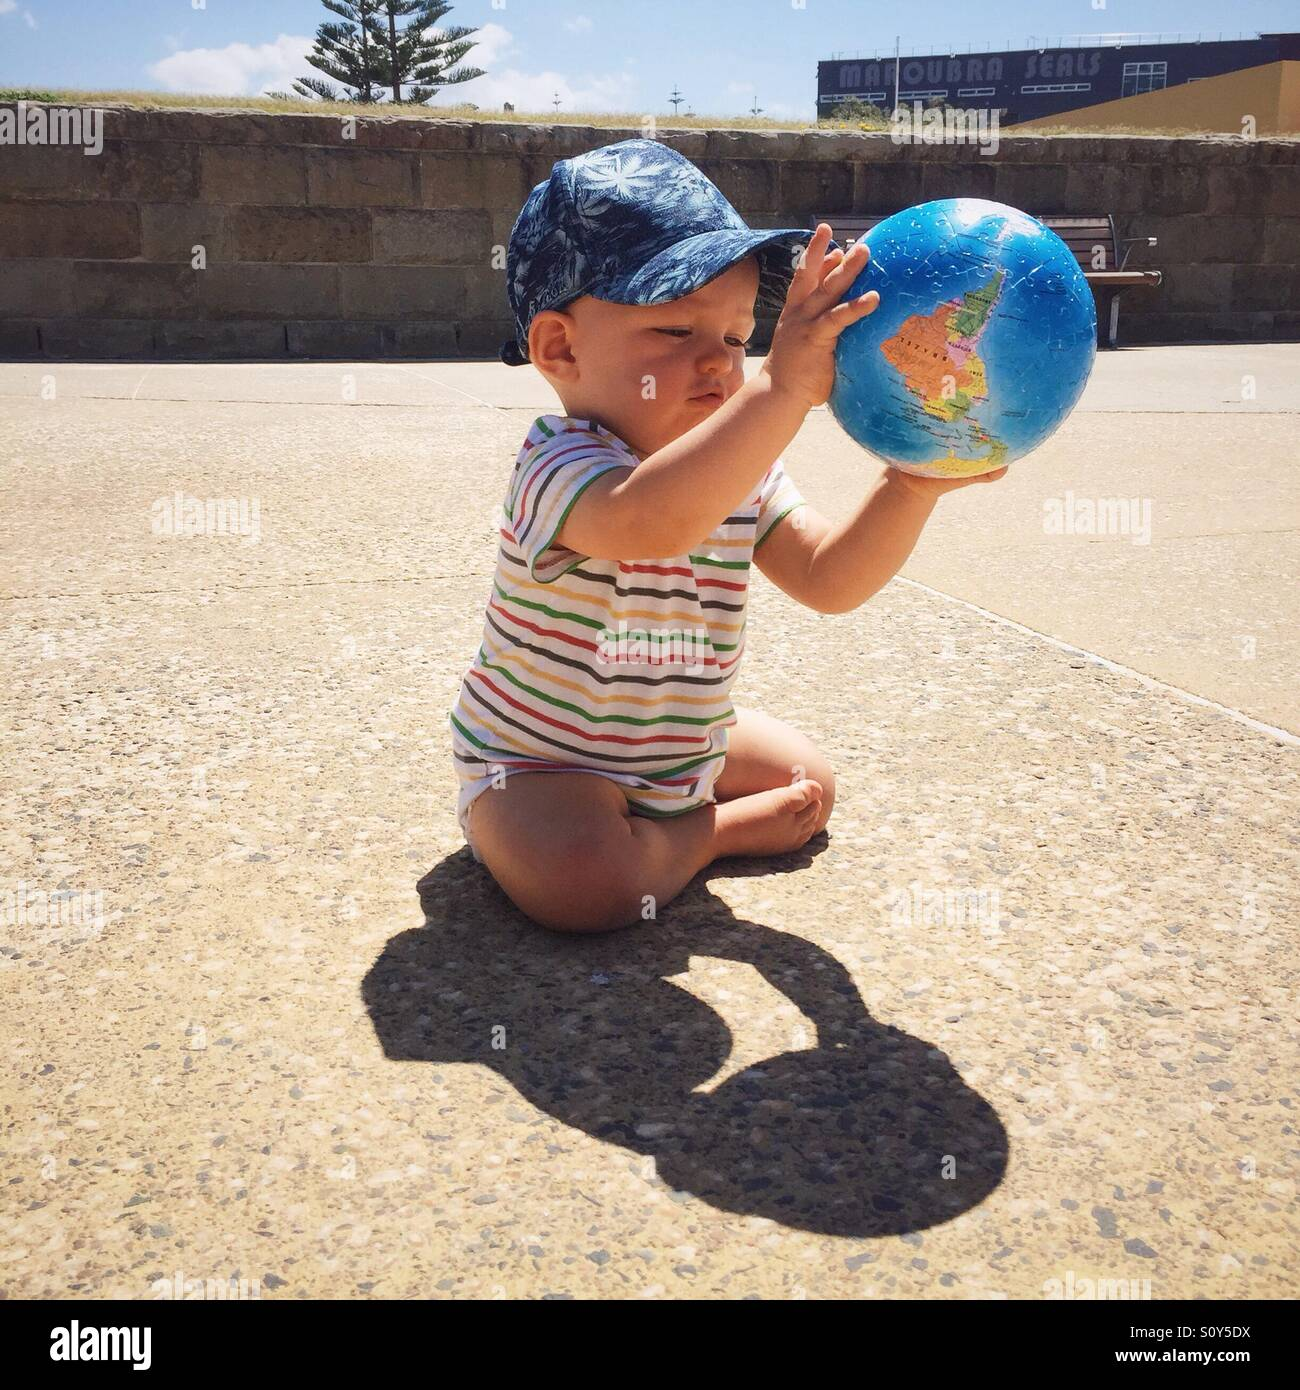 Child playing with globe ball - Stock Image